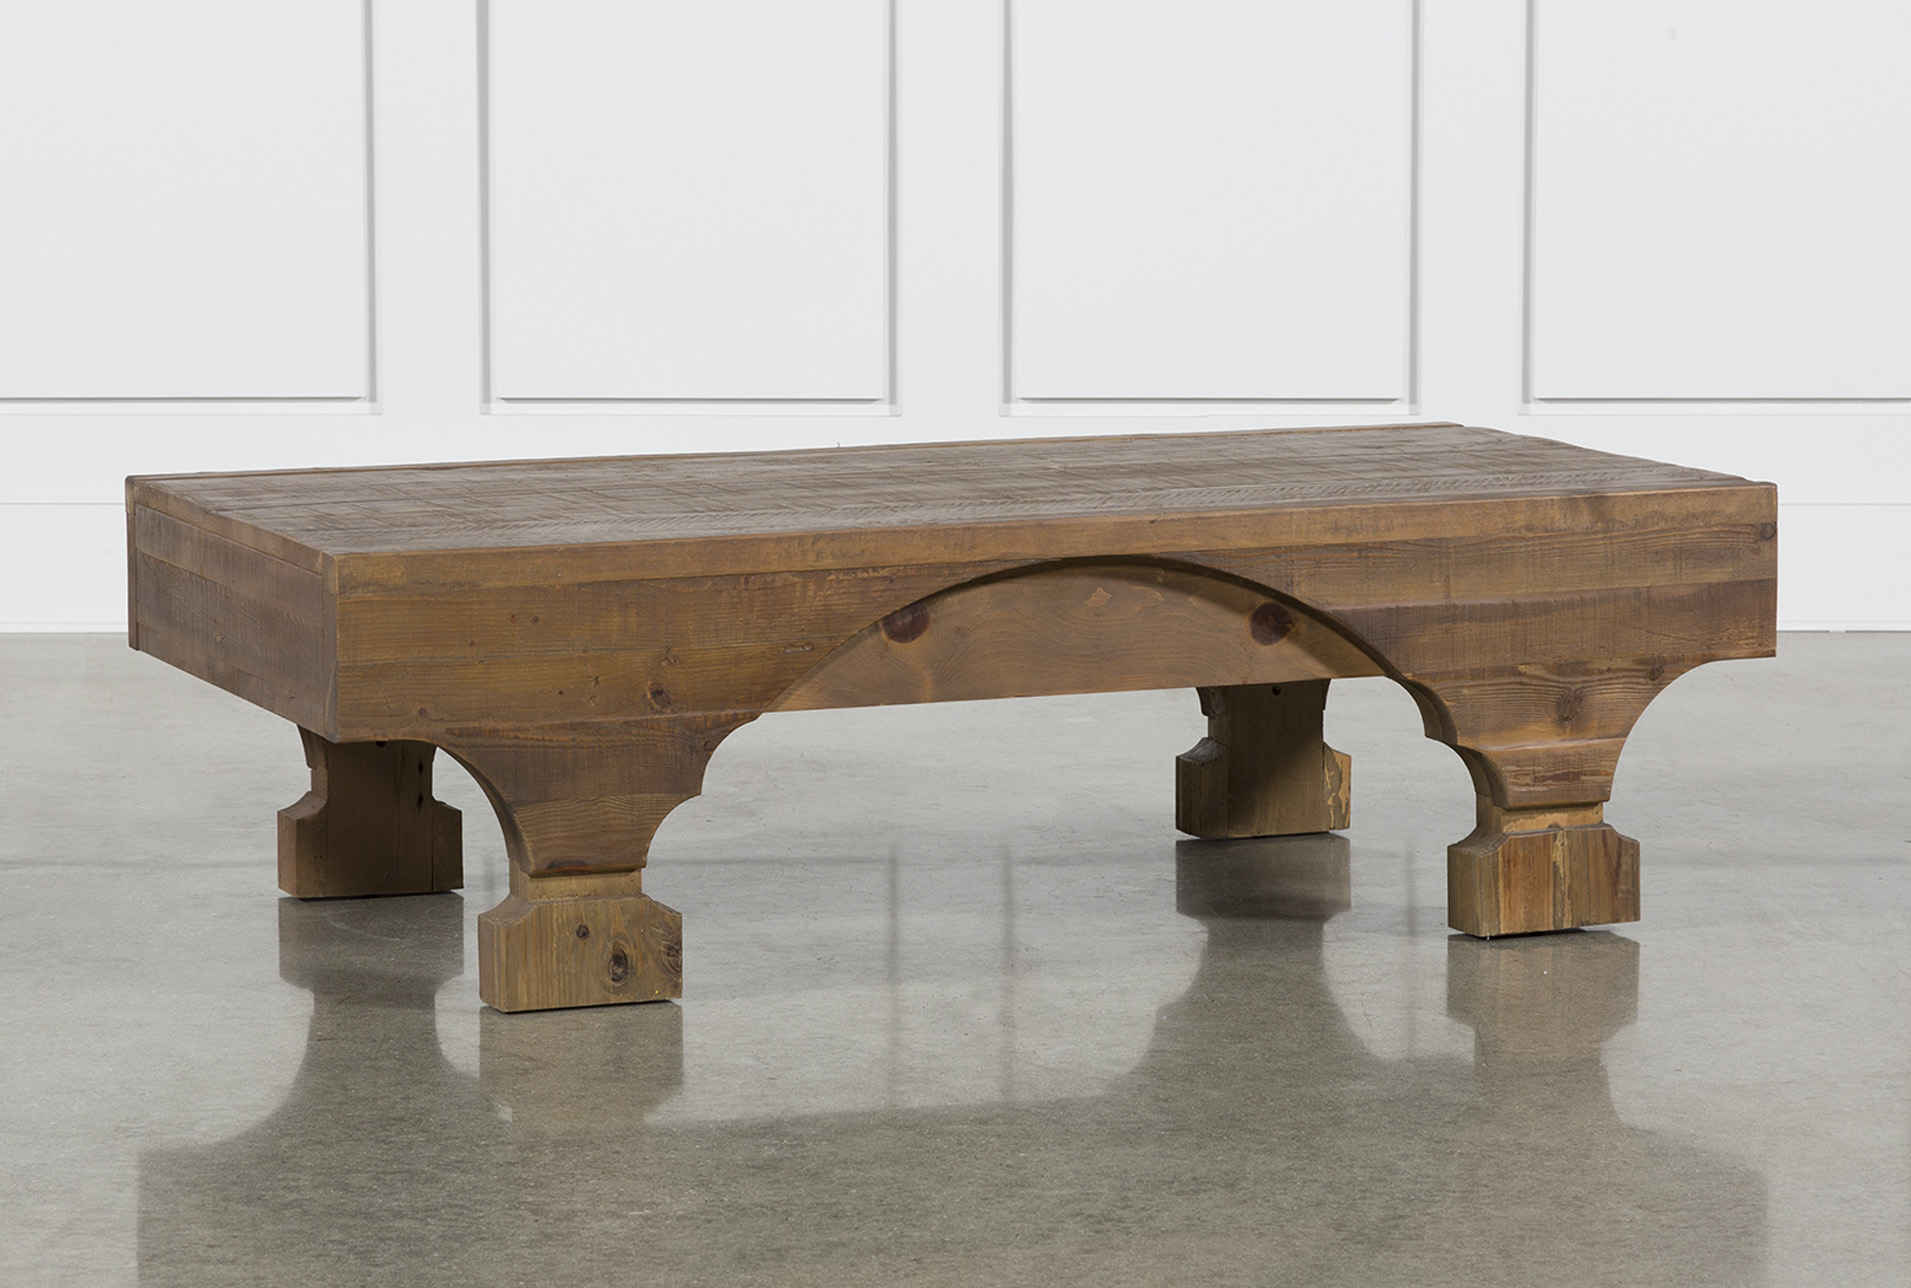 Antique Pine Coffee Table (Qty: 1) Has Been Successfully Added To Your Cart.